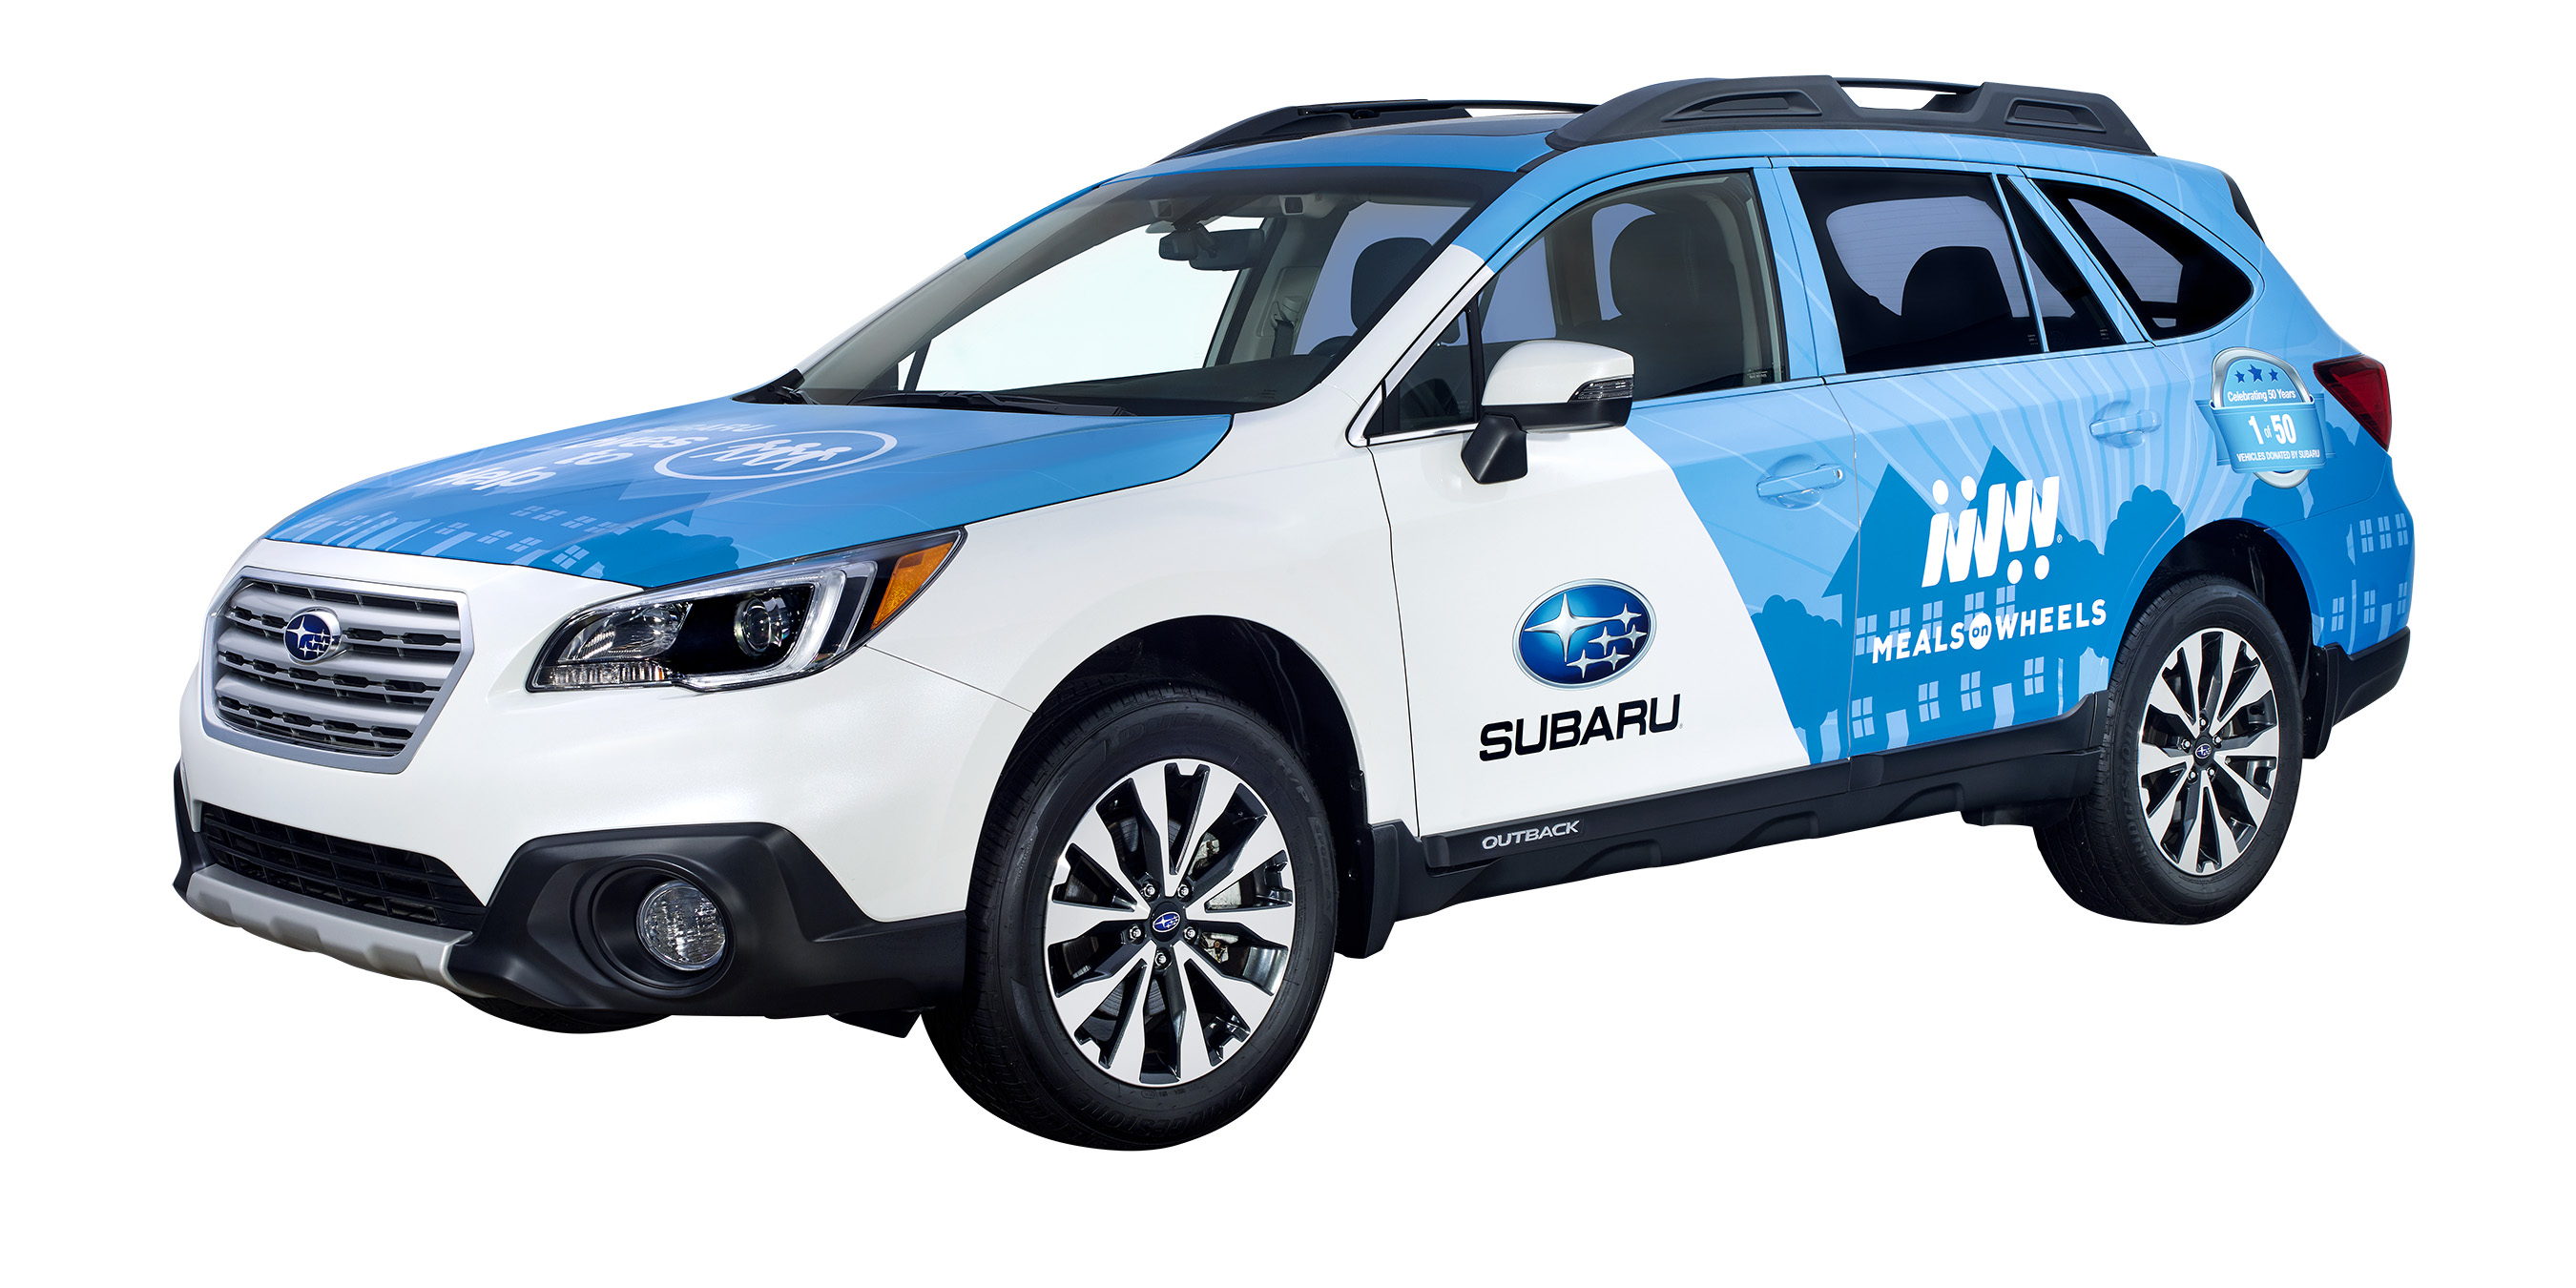 Subaru Donates a 2018 Outback to Foodnet Meals on Wheels!